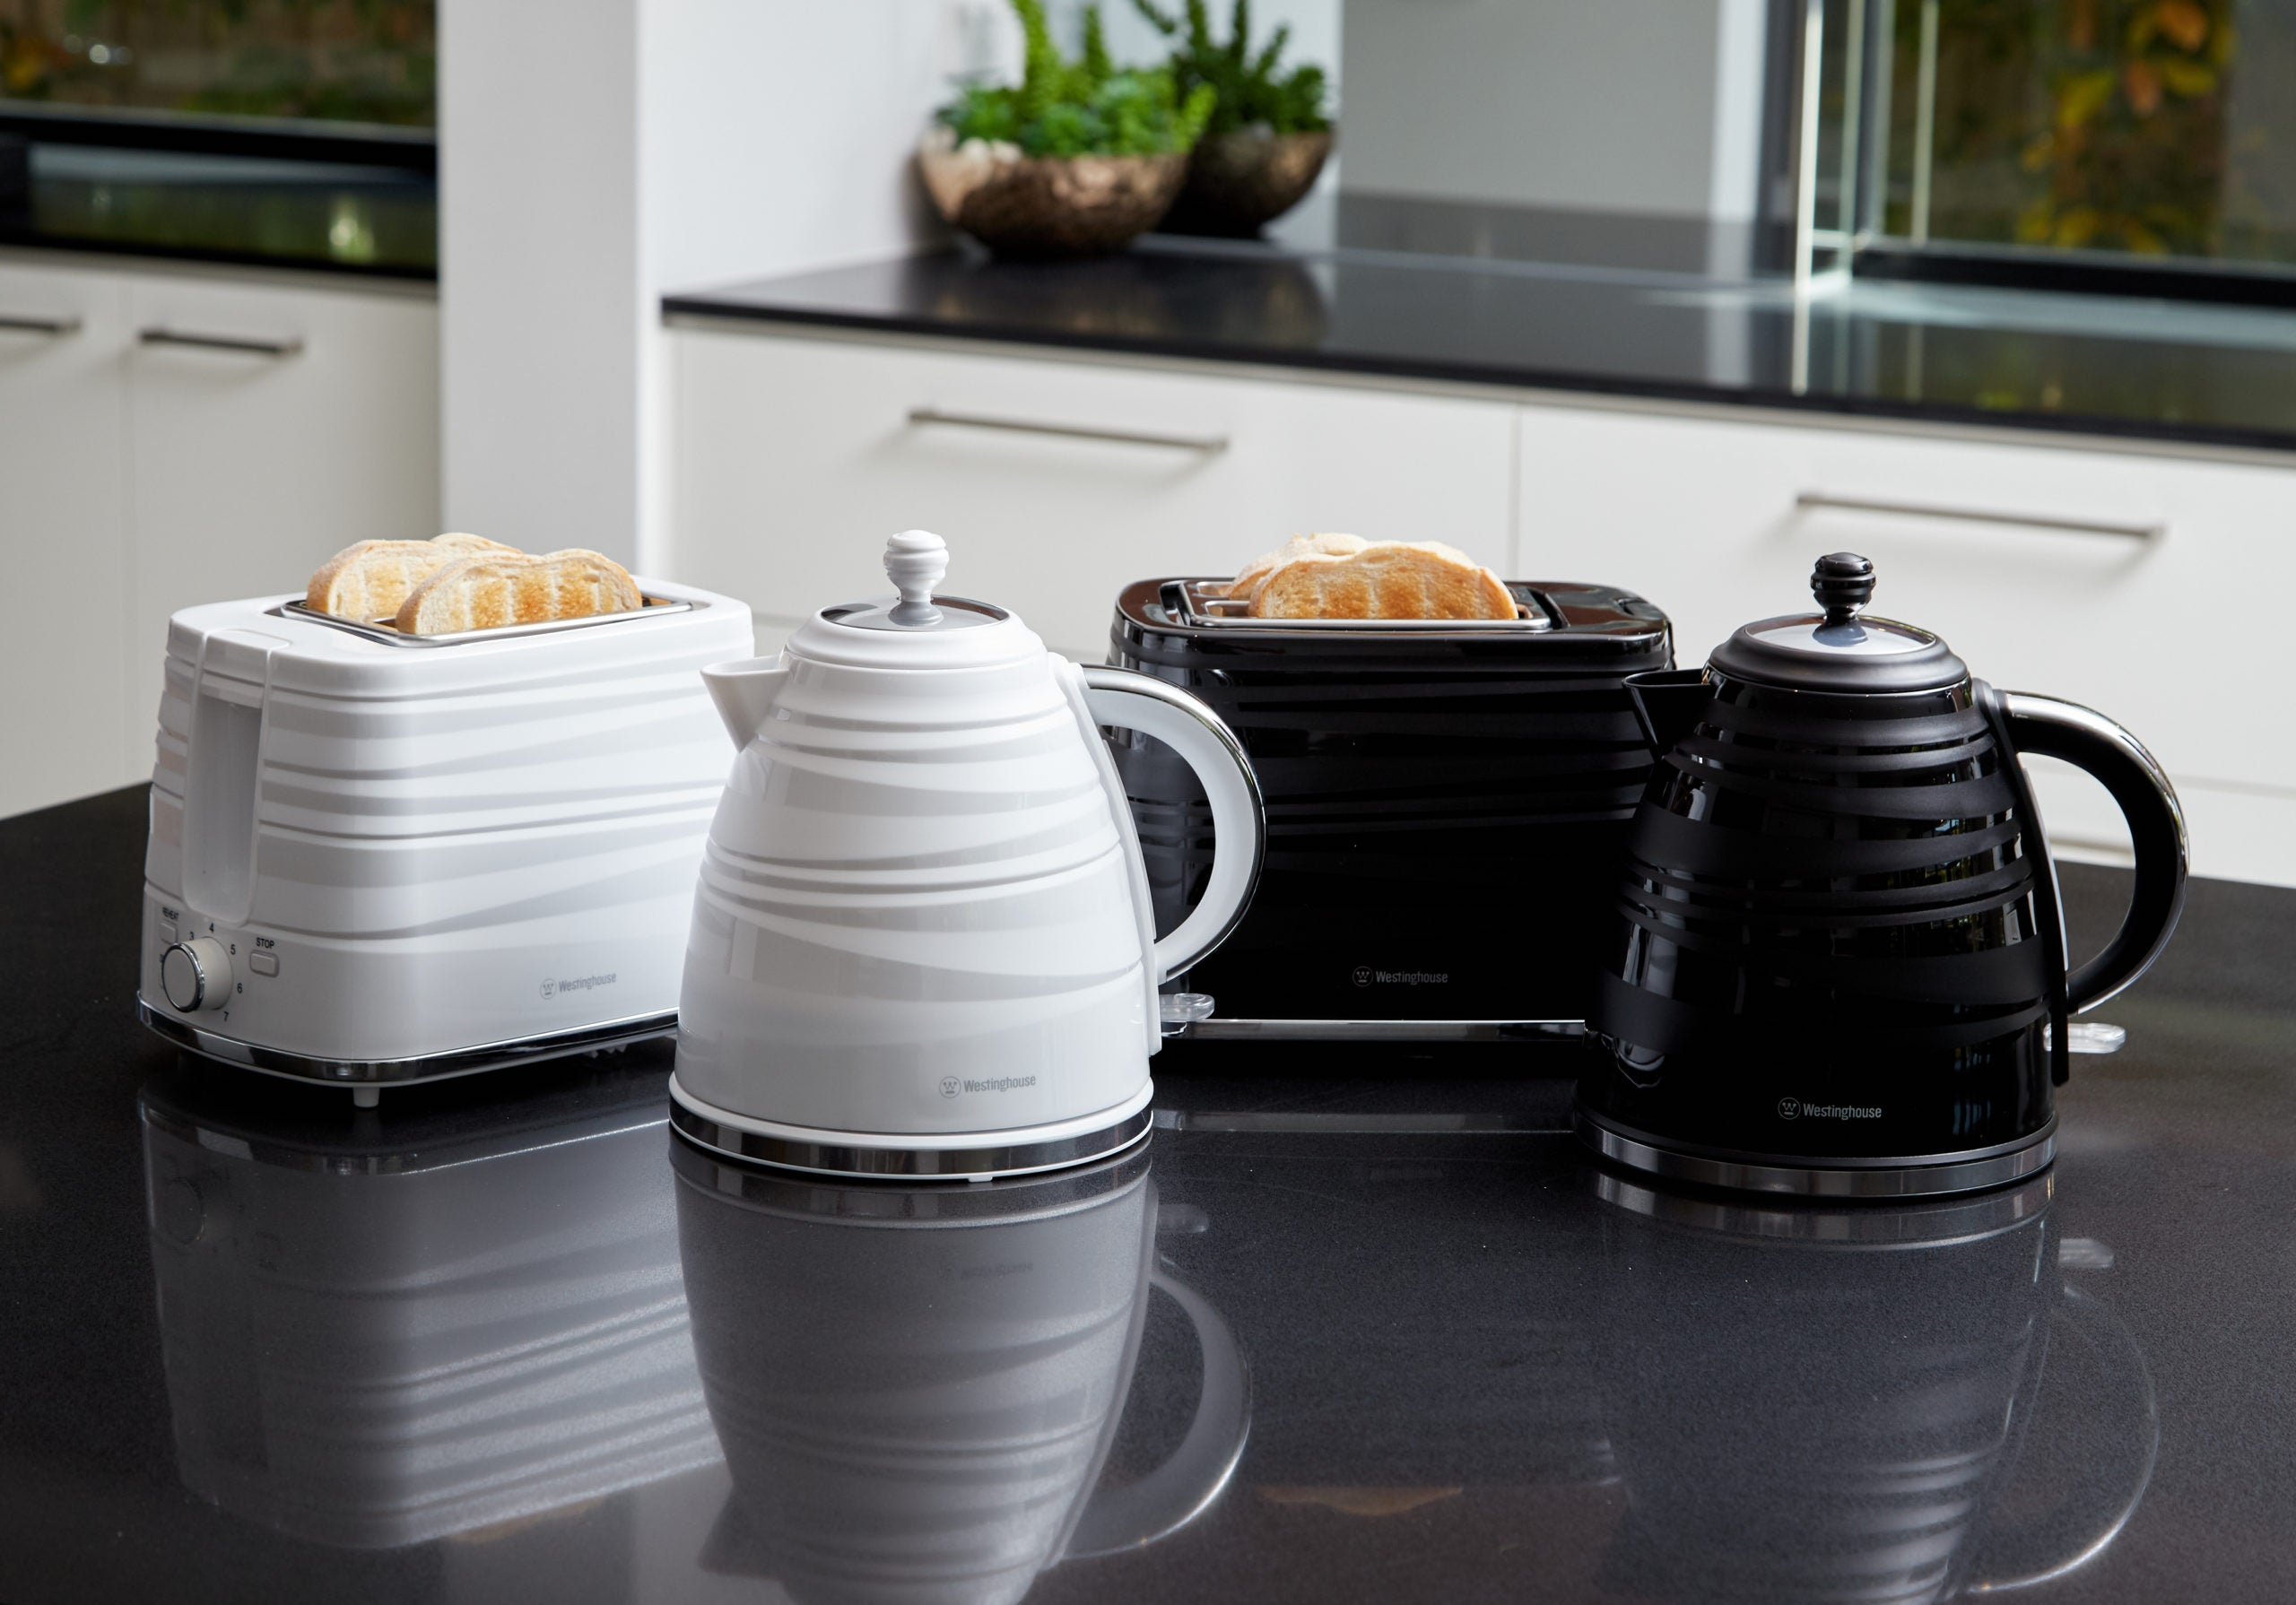 Westinghouse Breakfast Sets